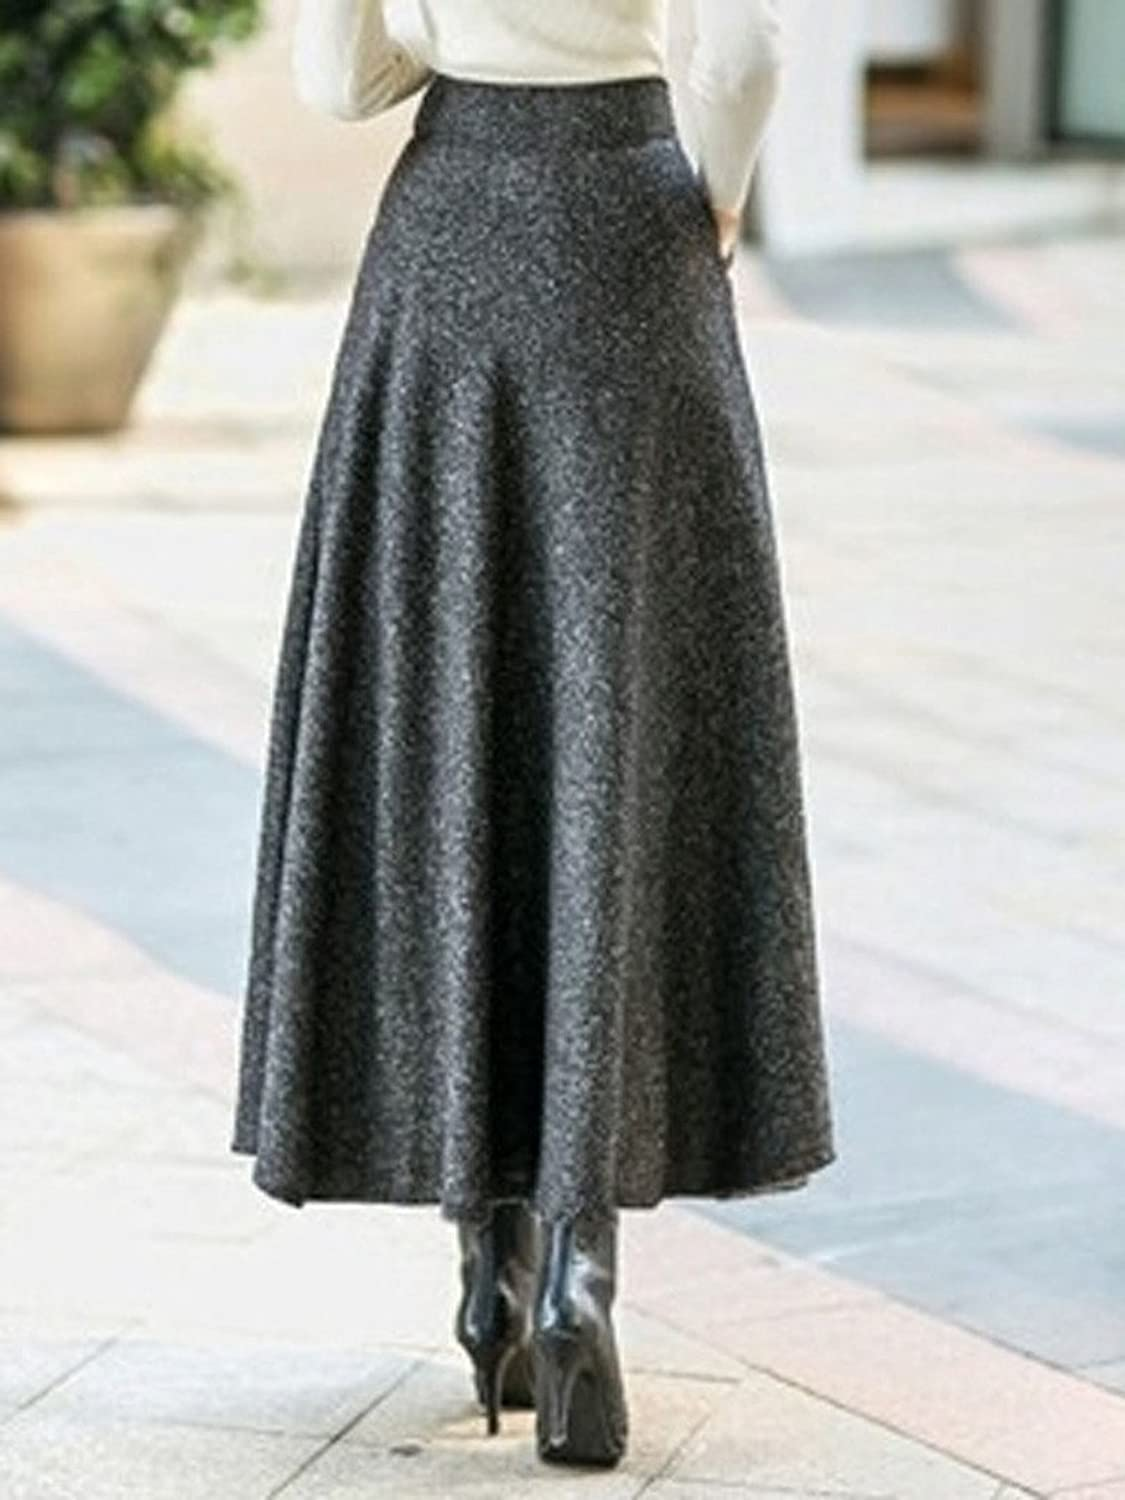 Edwardian Ladies Clothing – 1900, 1910s, Titanic Era CR Womens High Waist A-line Flared Long Skirt Winter Fall Midi Skirt $27.99 AT vintagedancer.com